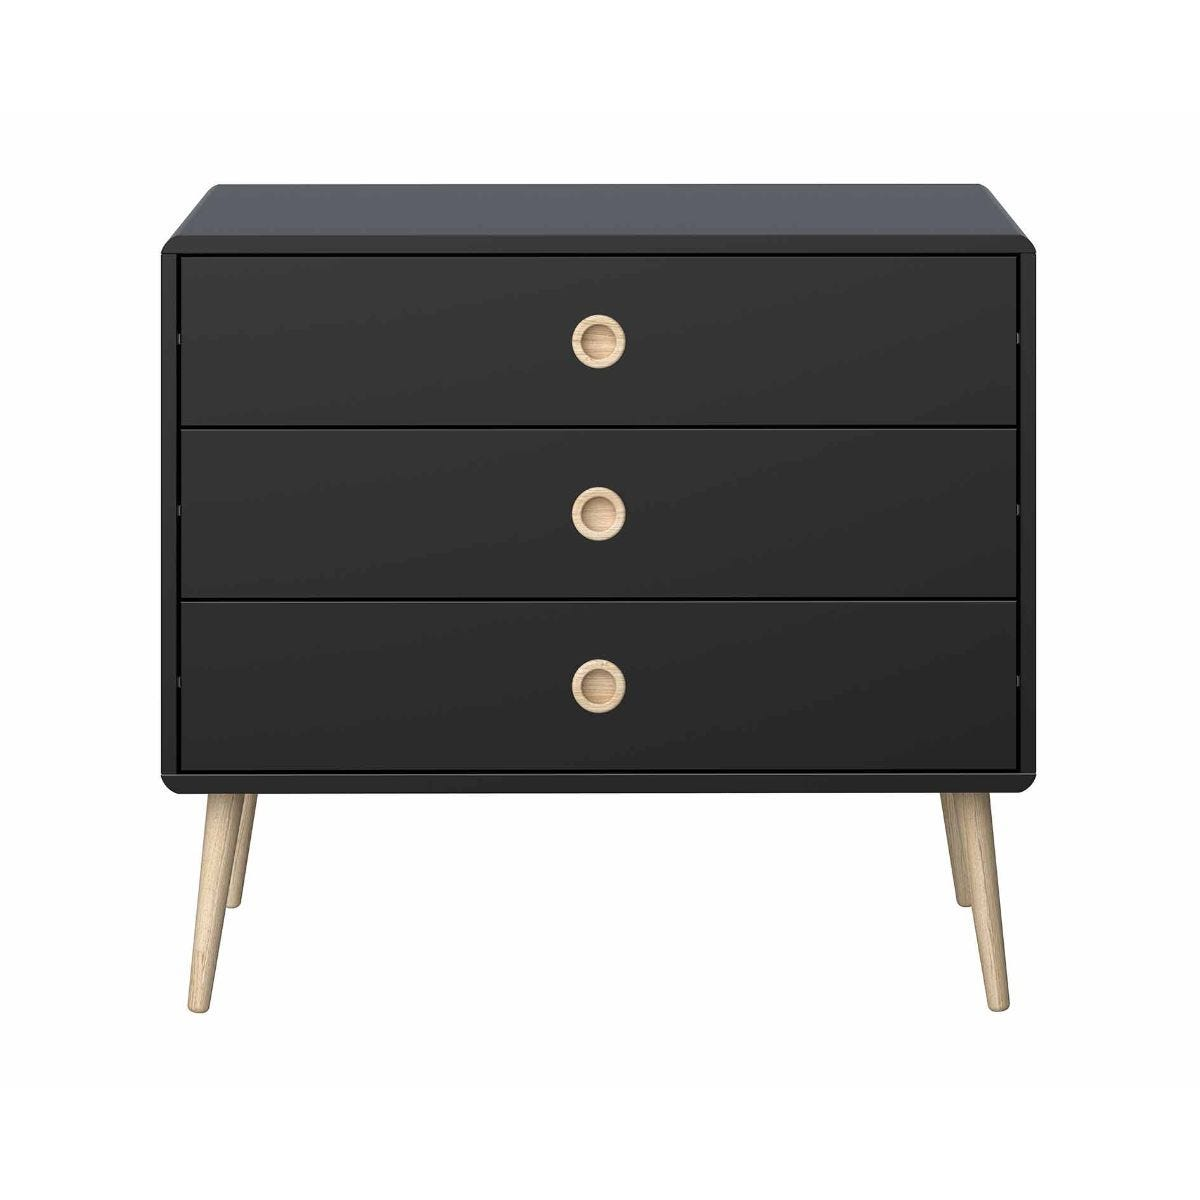 Steens Retro 3 Drawer Wide Chest of Drawers, Black